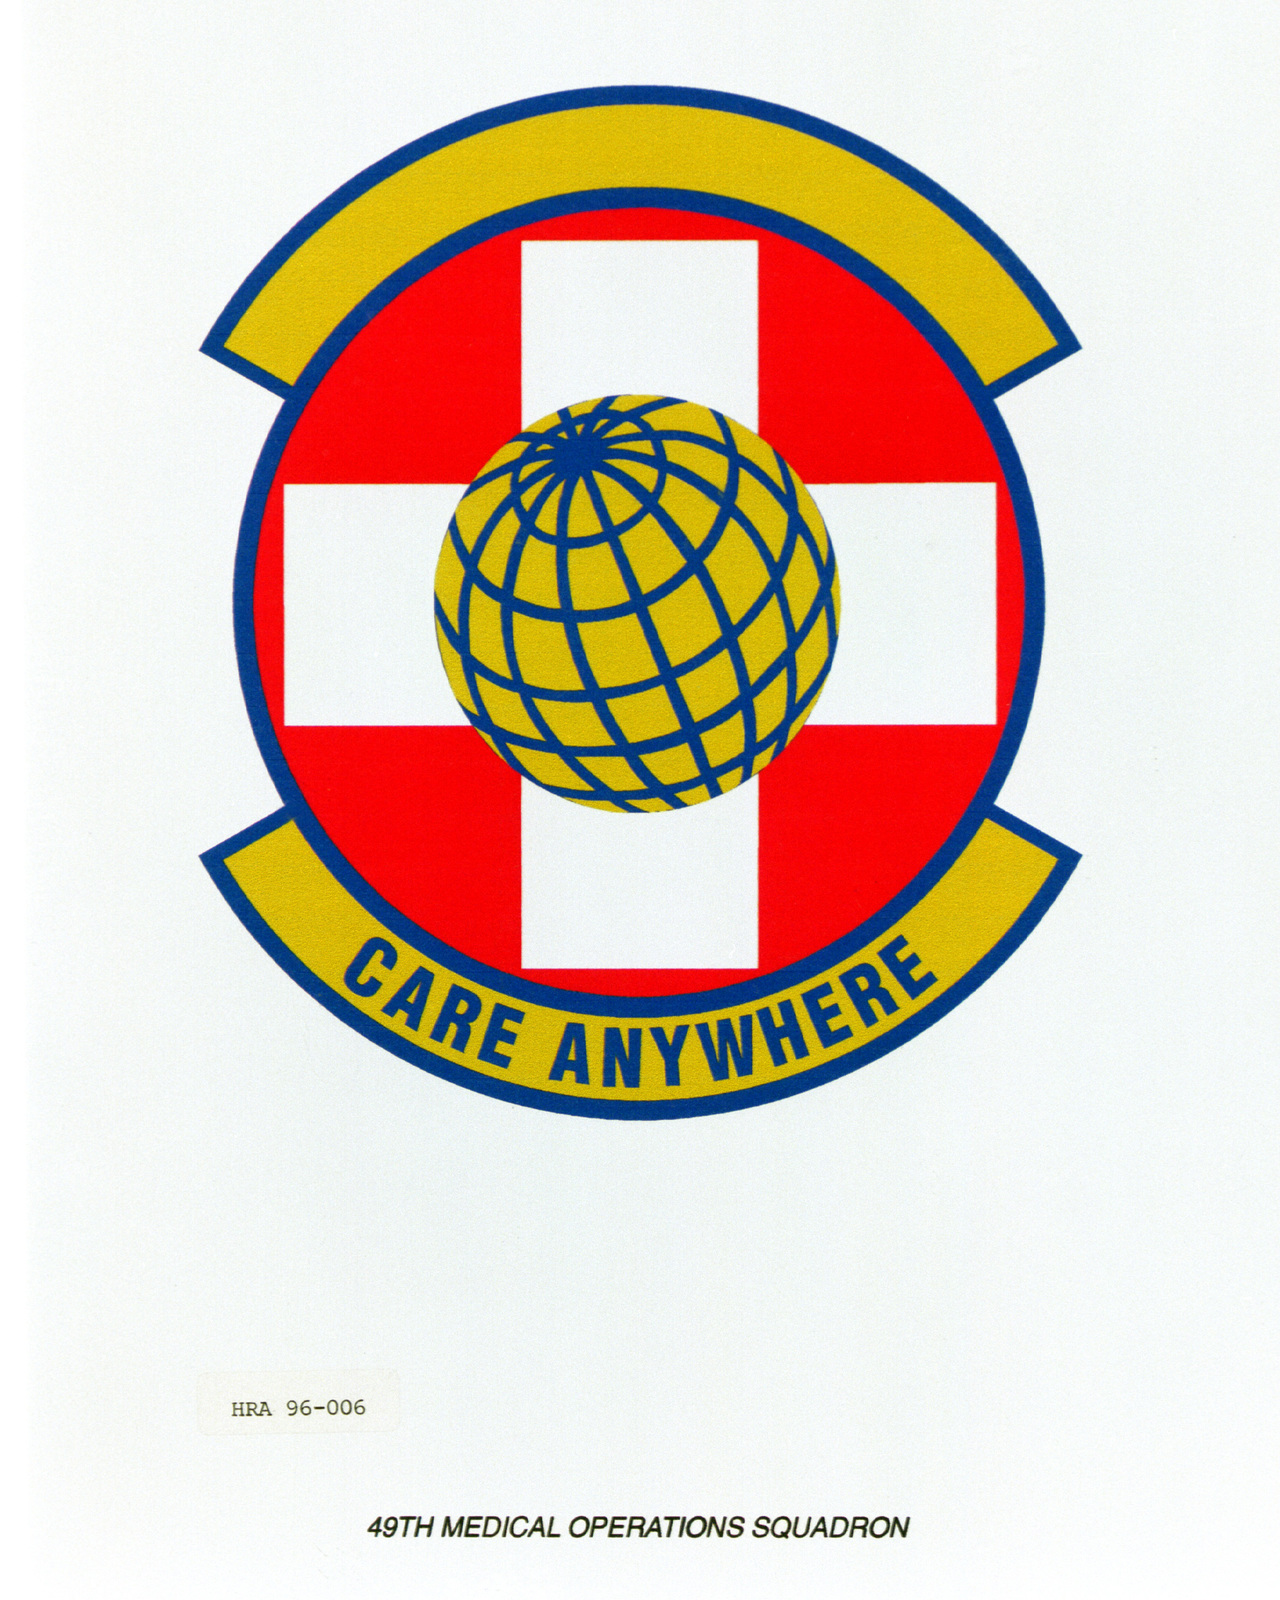 Approved insignia for the 49th Medical Operations Squadron Exact Date Shot Unknown